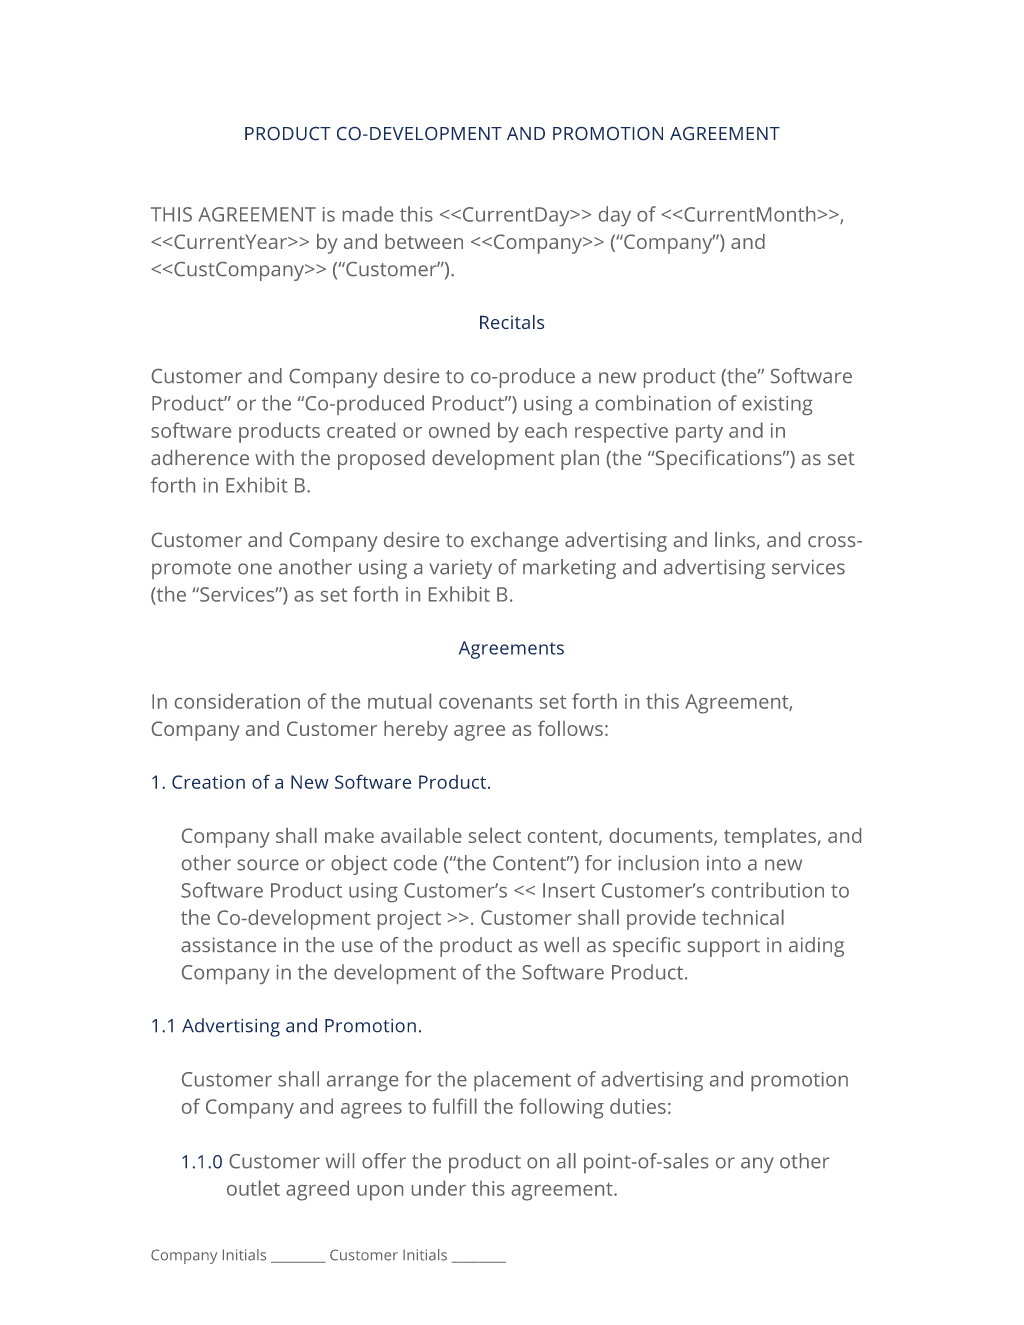 Software Agreement Contract Software Co Development Contract 3 Easy Steps